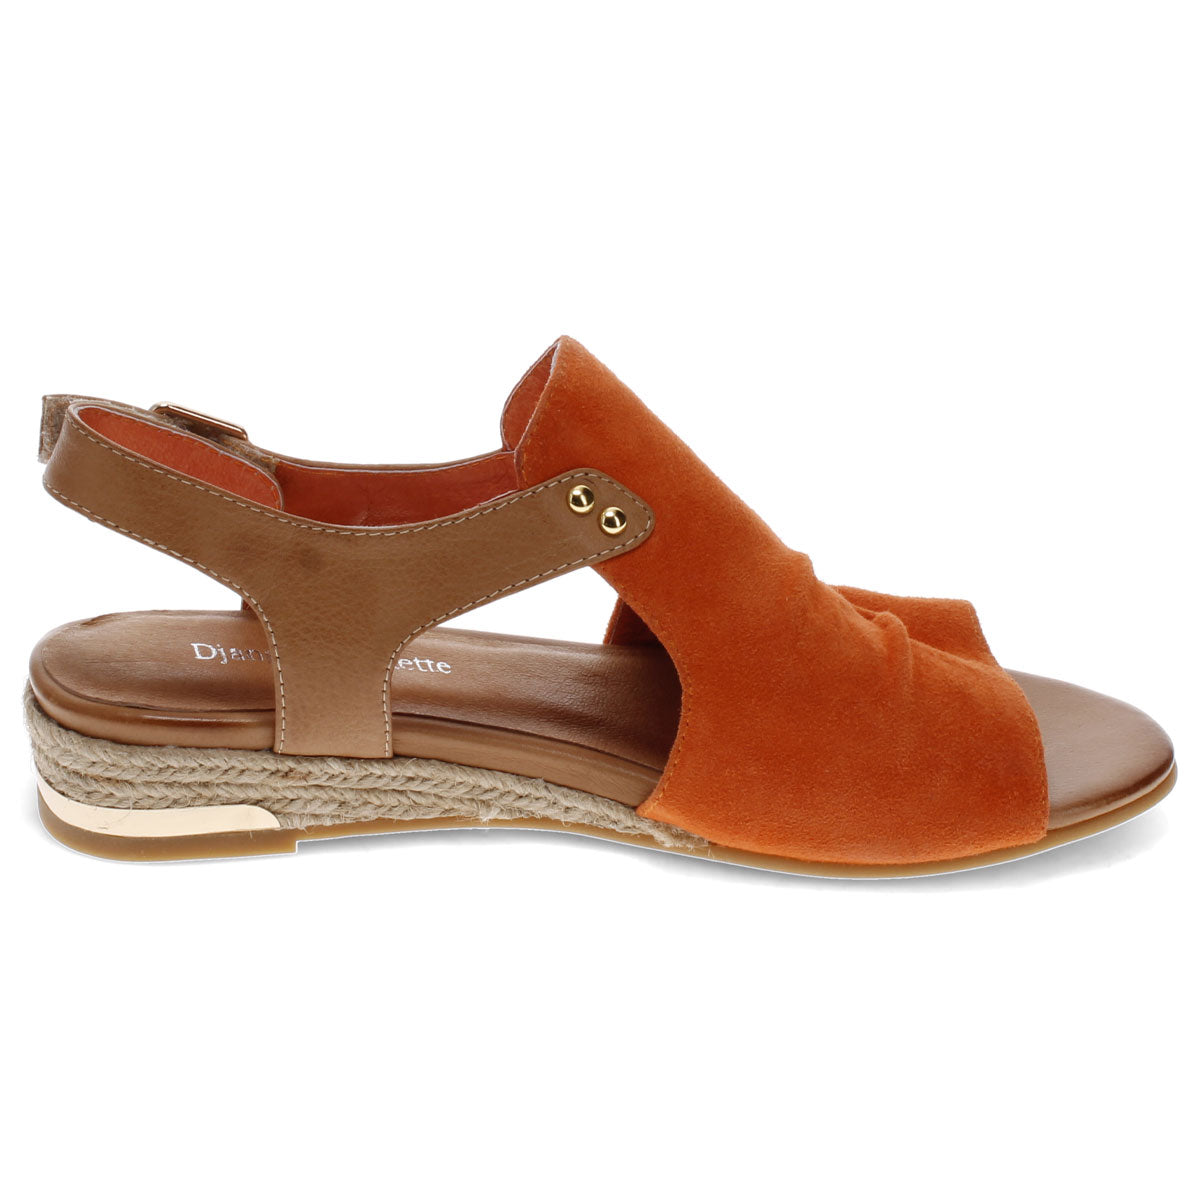 ORANGE-TAN SUEDE | Right